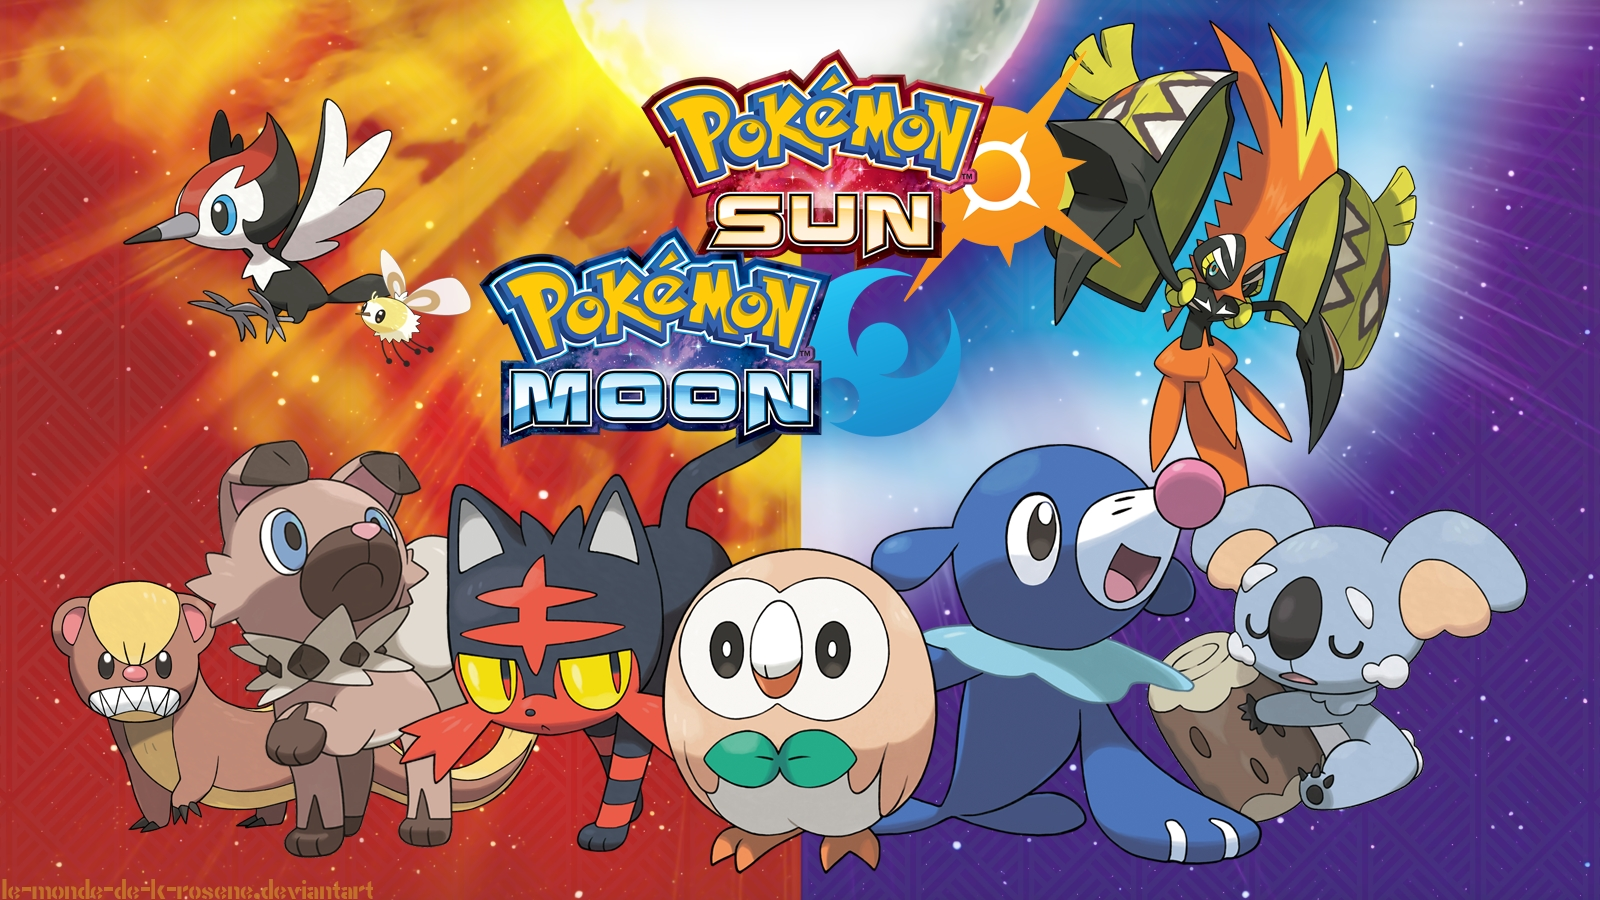 94 pokémon sun and moon hd wallpapers | background images